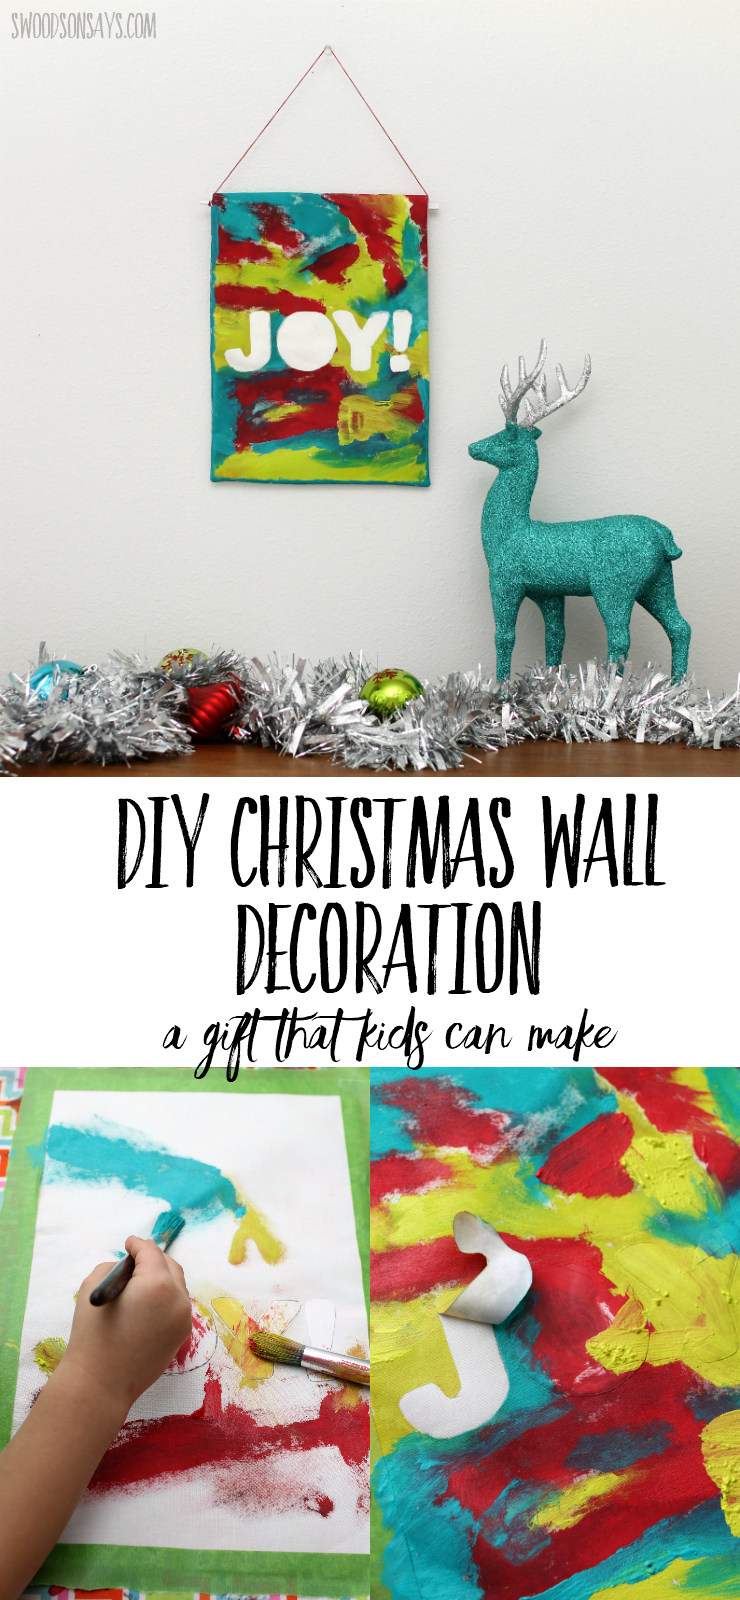 DIY Christmas Wall Decoration that Kids Can Make - Swoodson Says